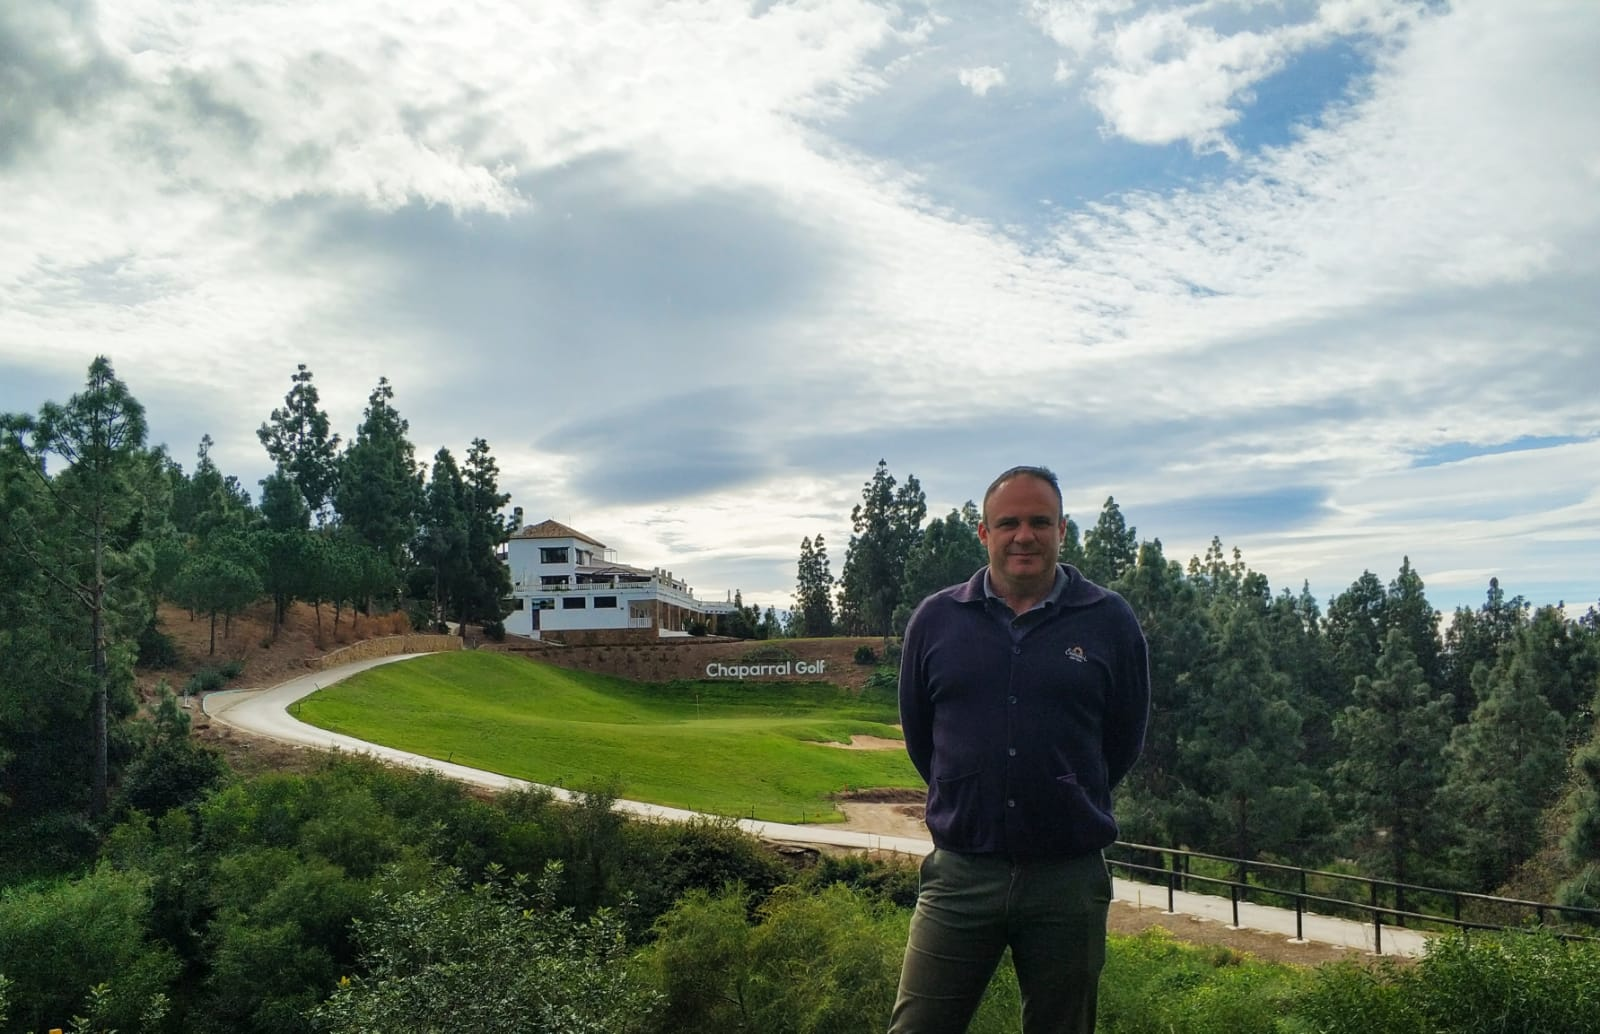 Interview with Jaime Mamolar, Head Greenkeeper at Chaparral Golf Club